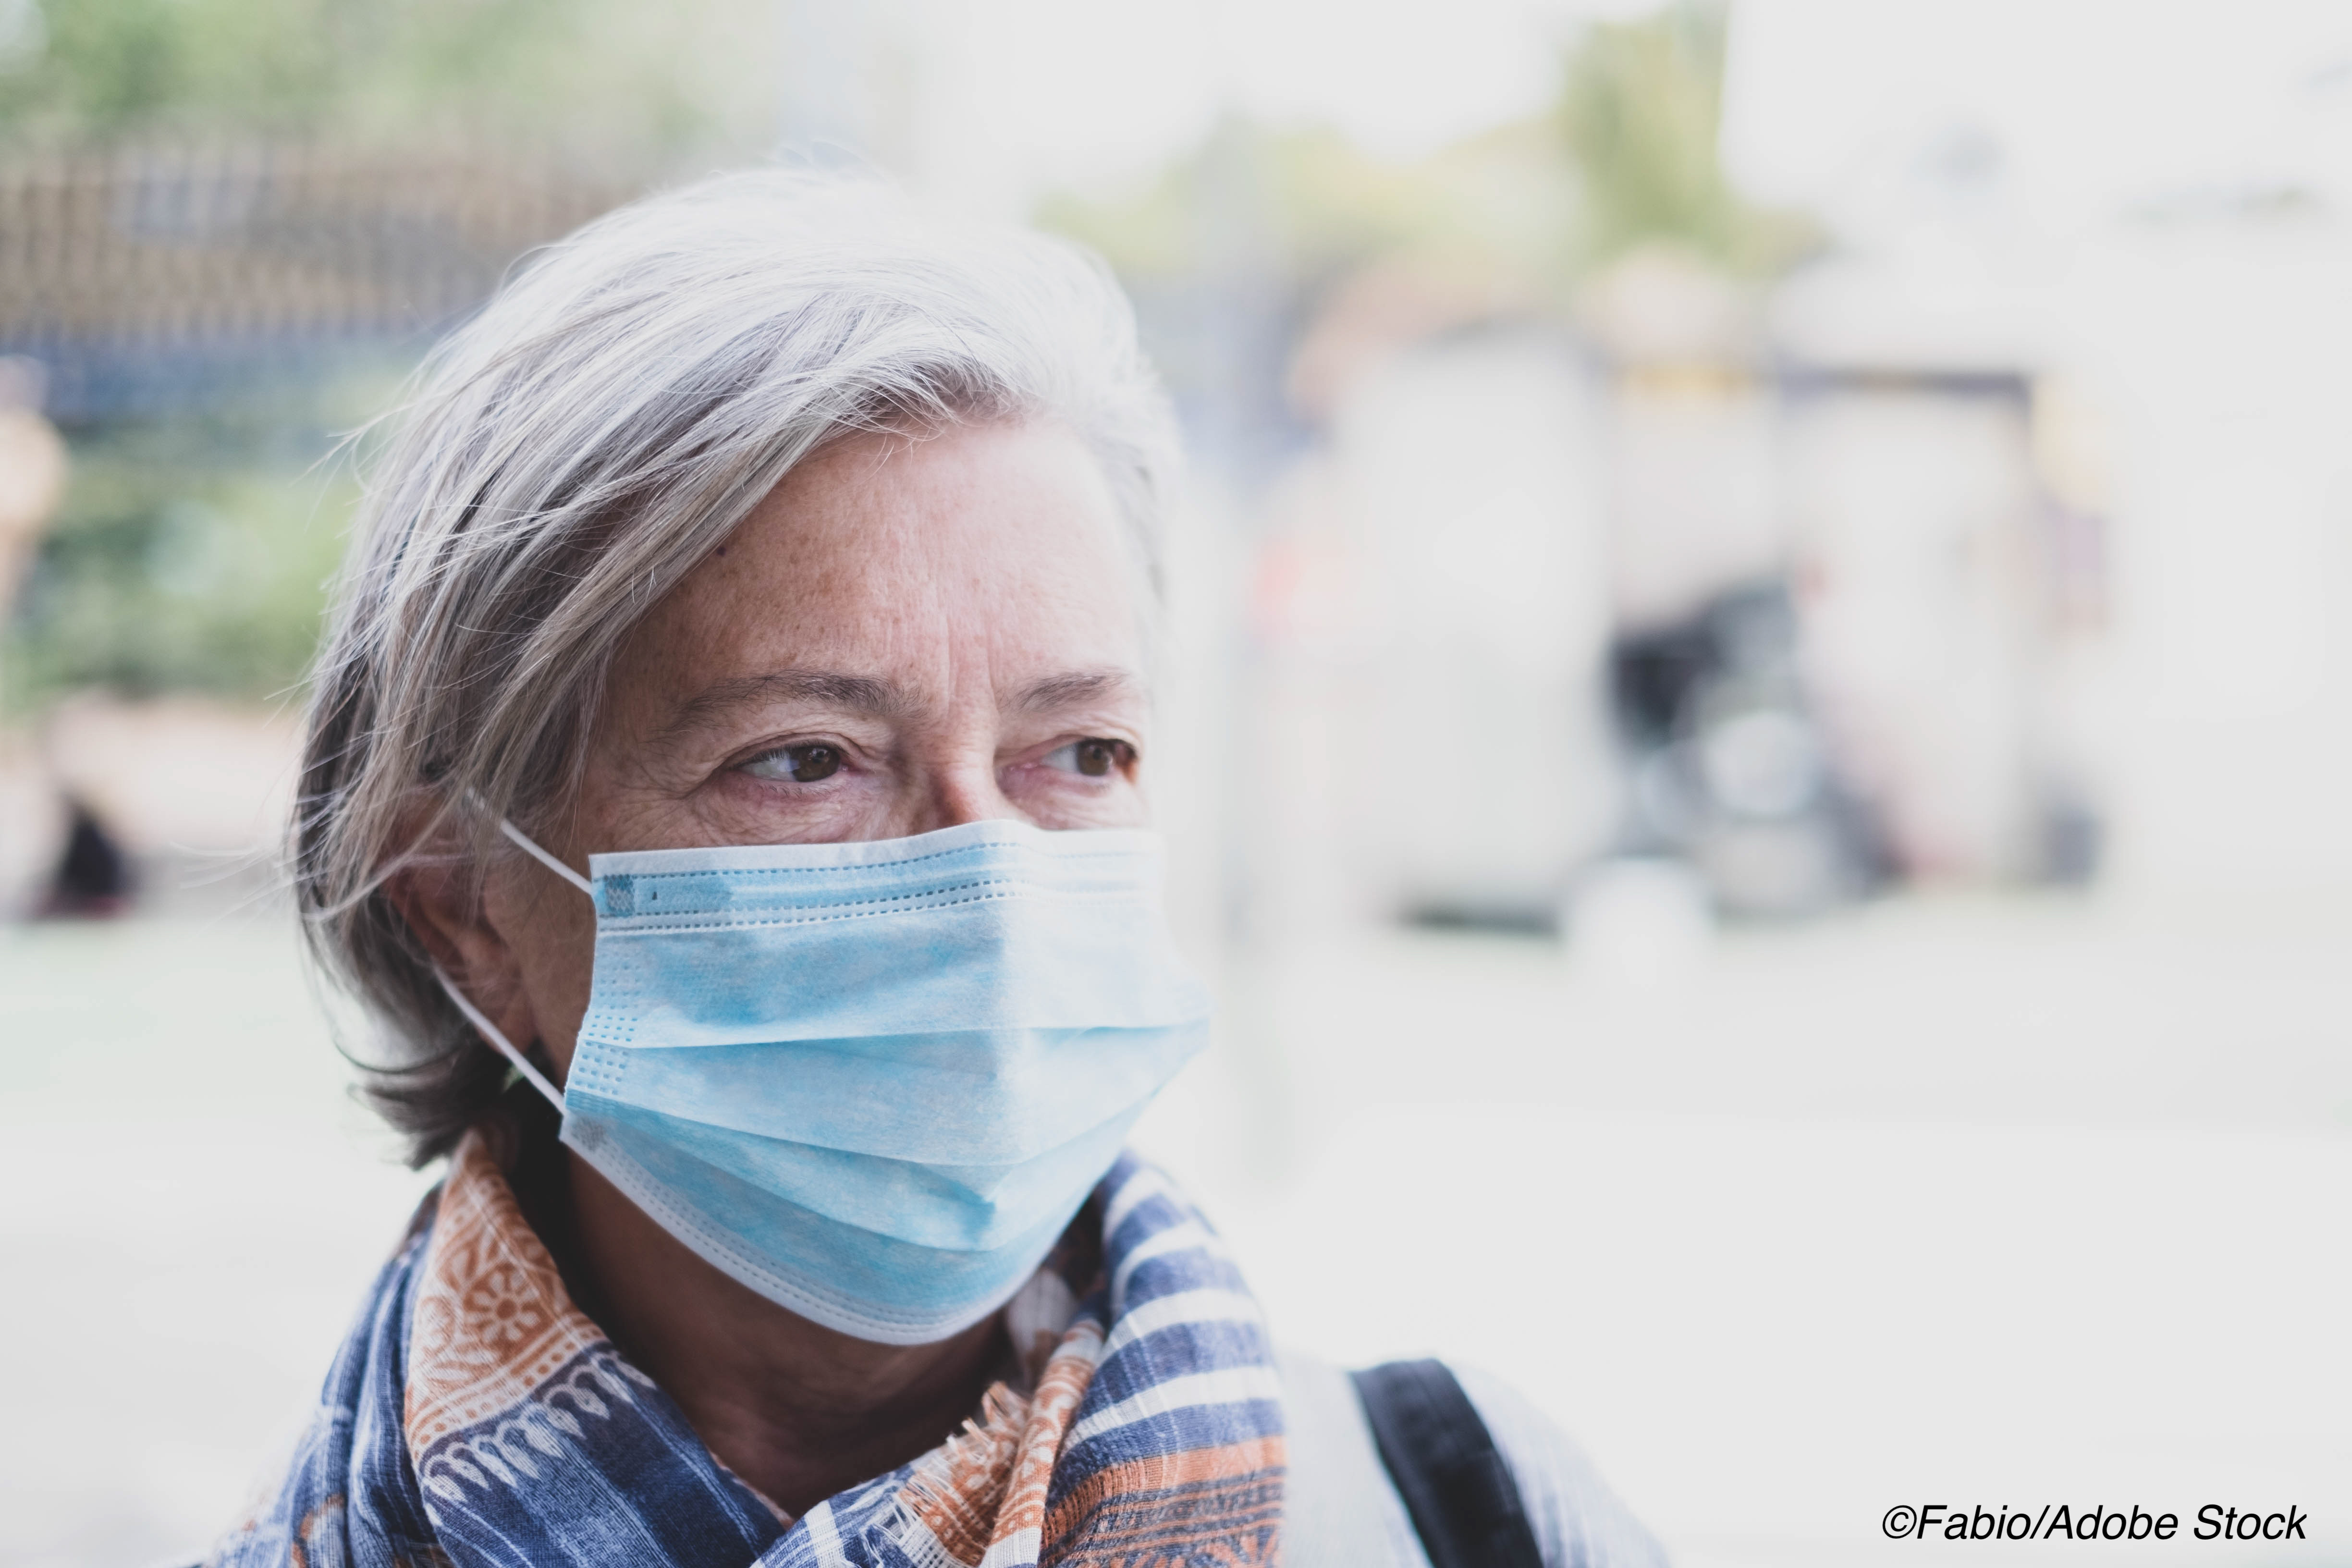 Covid-19: Vaxxed Up? Stay Masked Up to Really End Pandemic